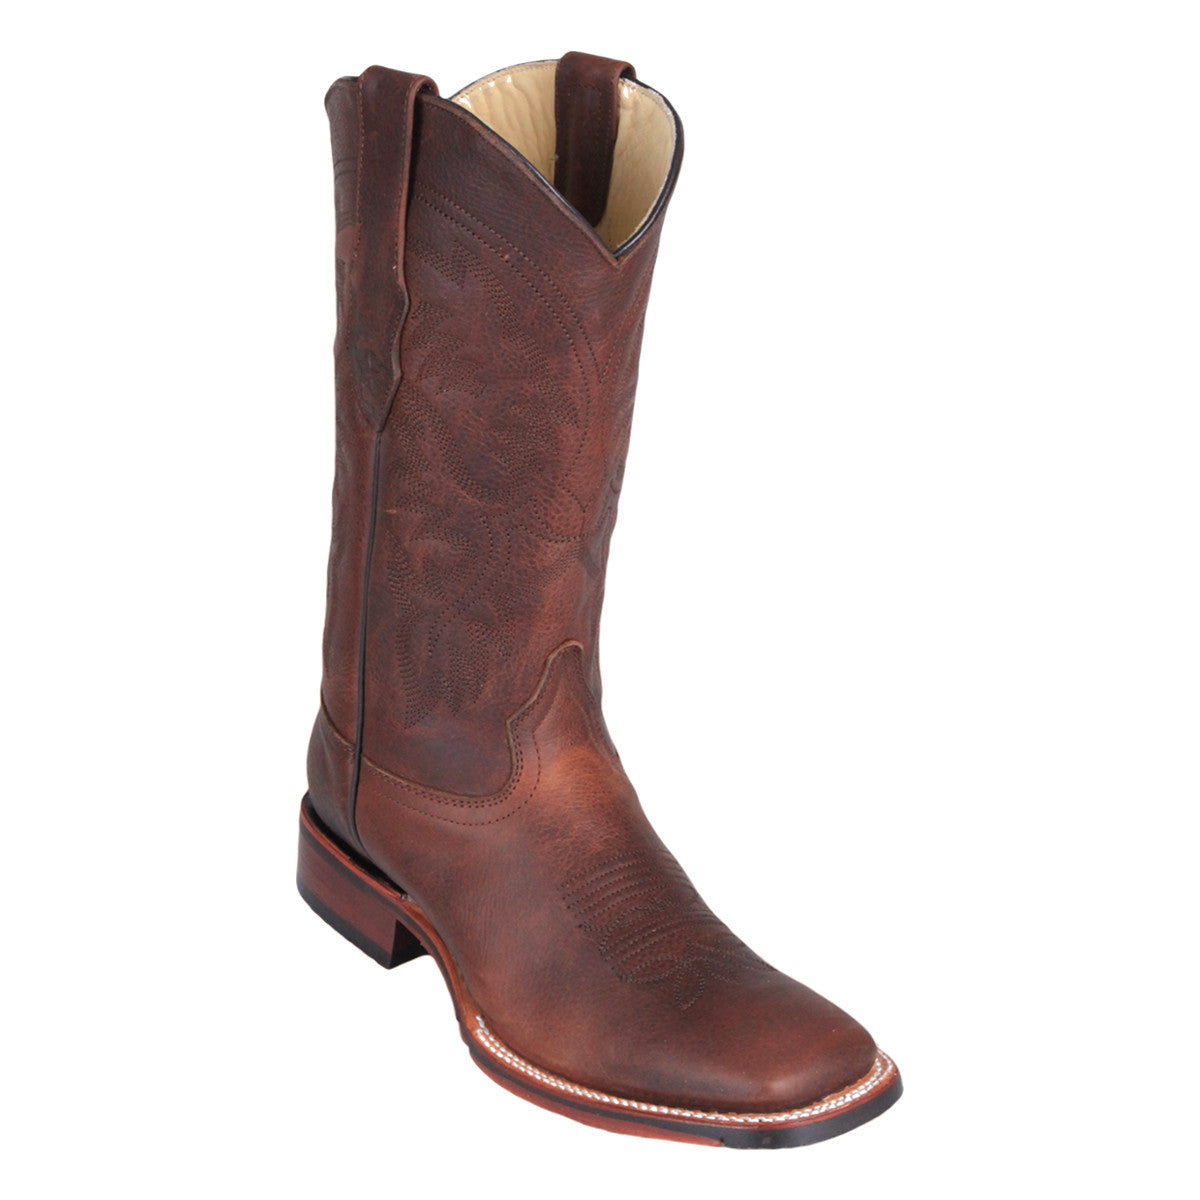 Los Altos Boots Wide Square Toe Rage